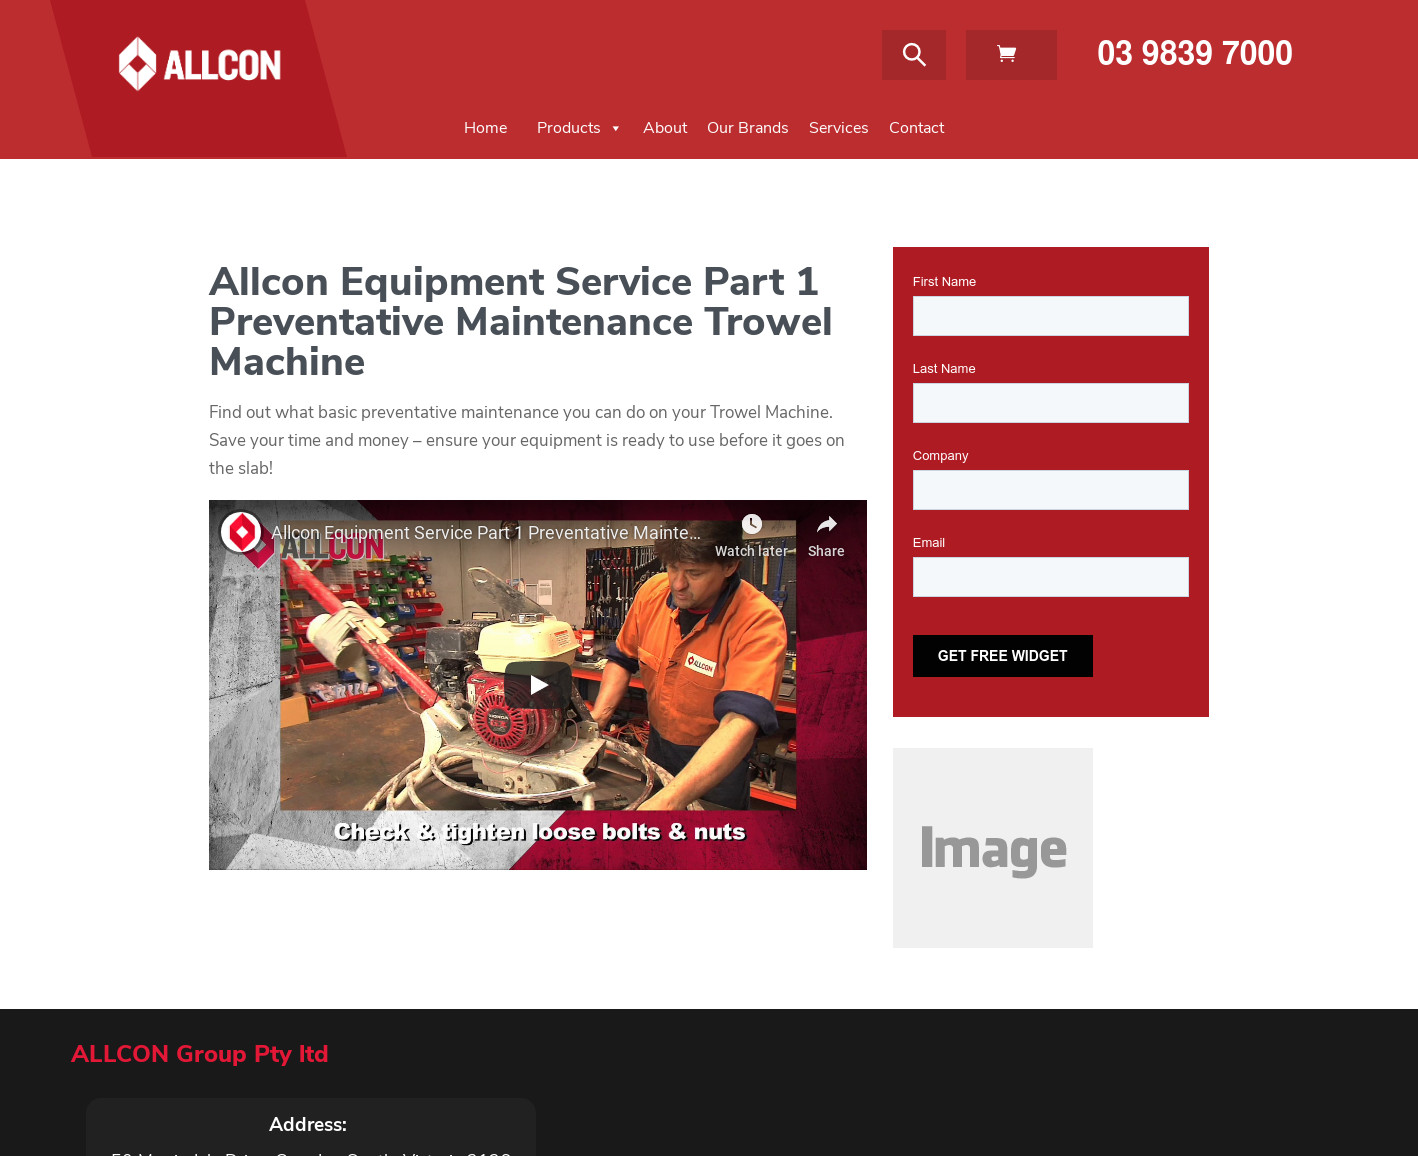 Allcon Equipment Service Part 1 Preventative Maintenance Trowel Machine